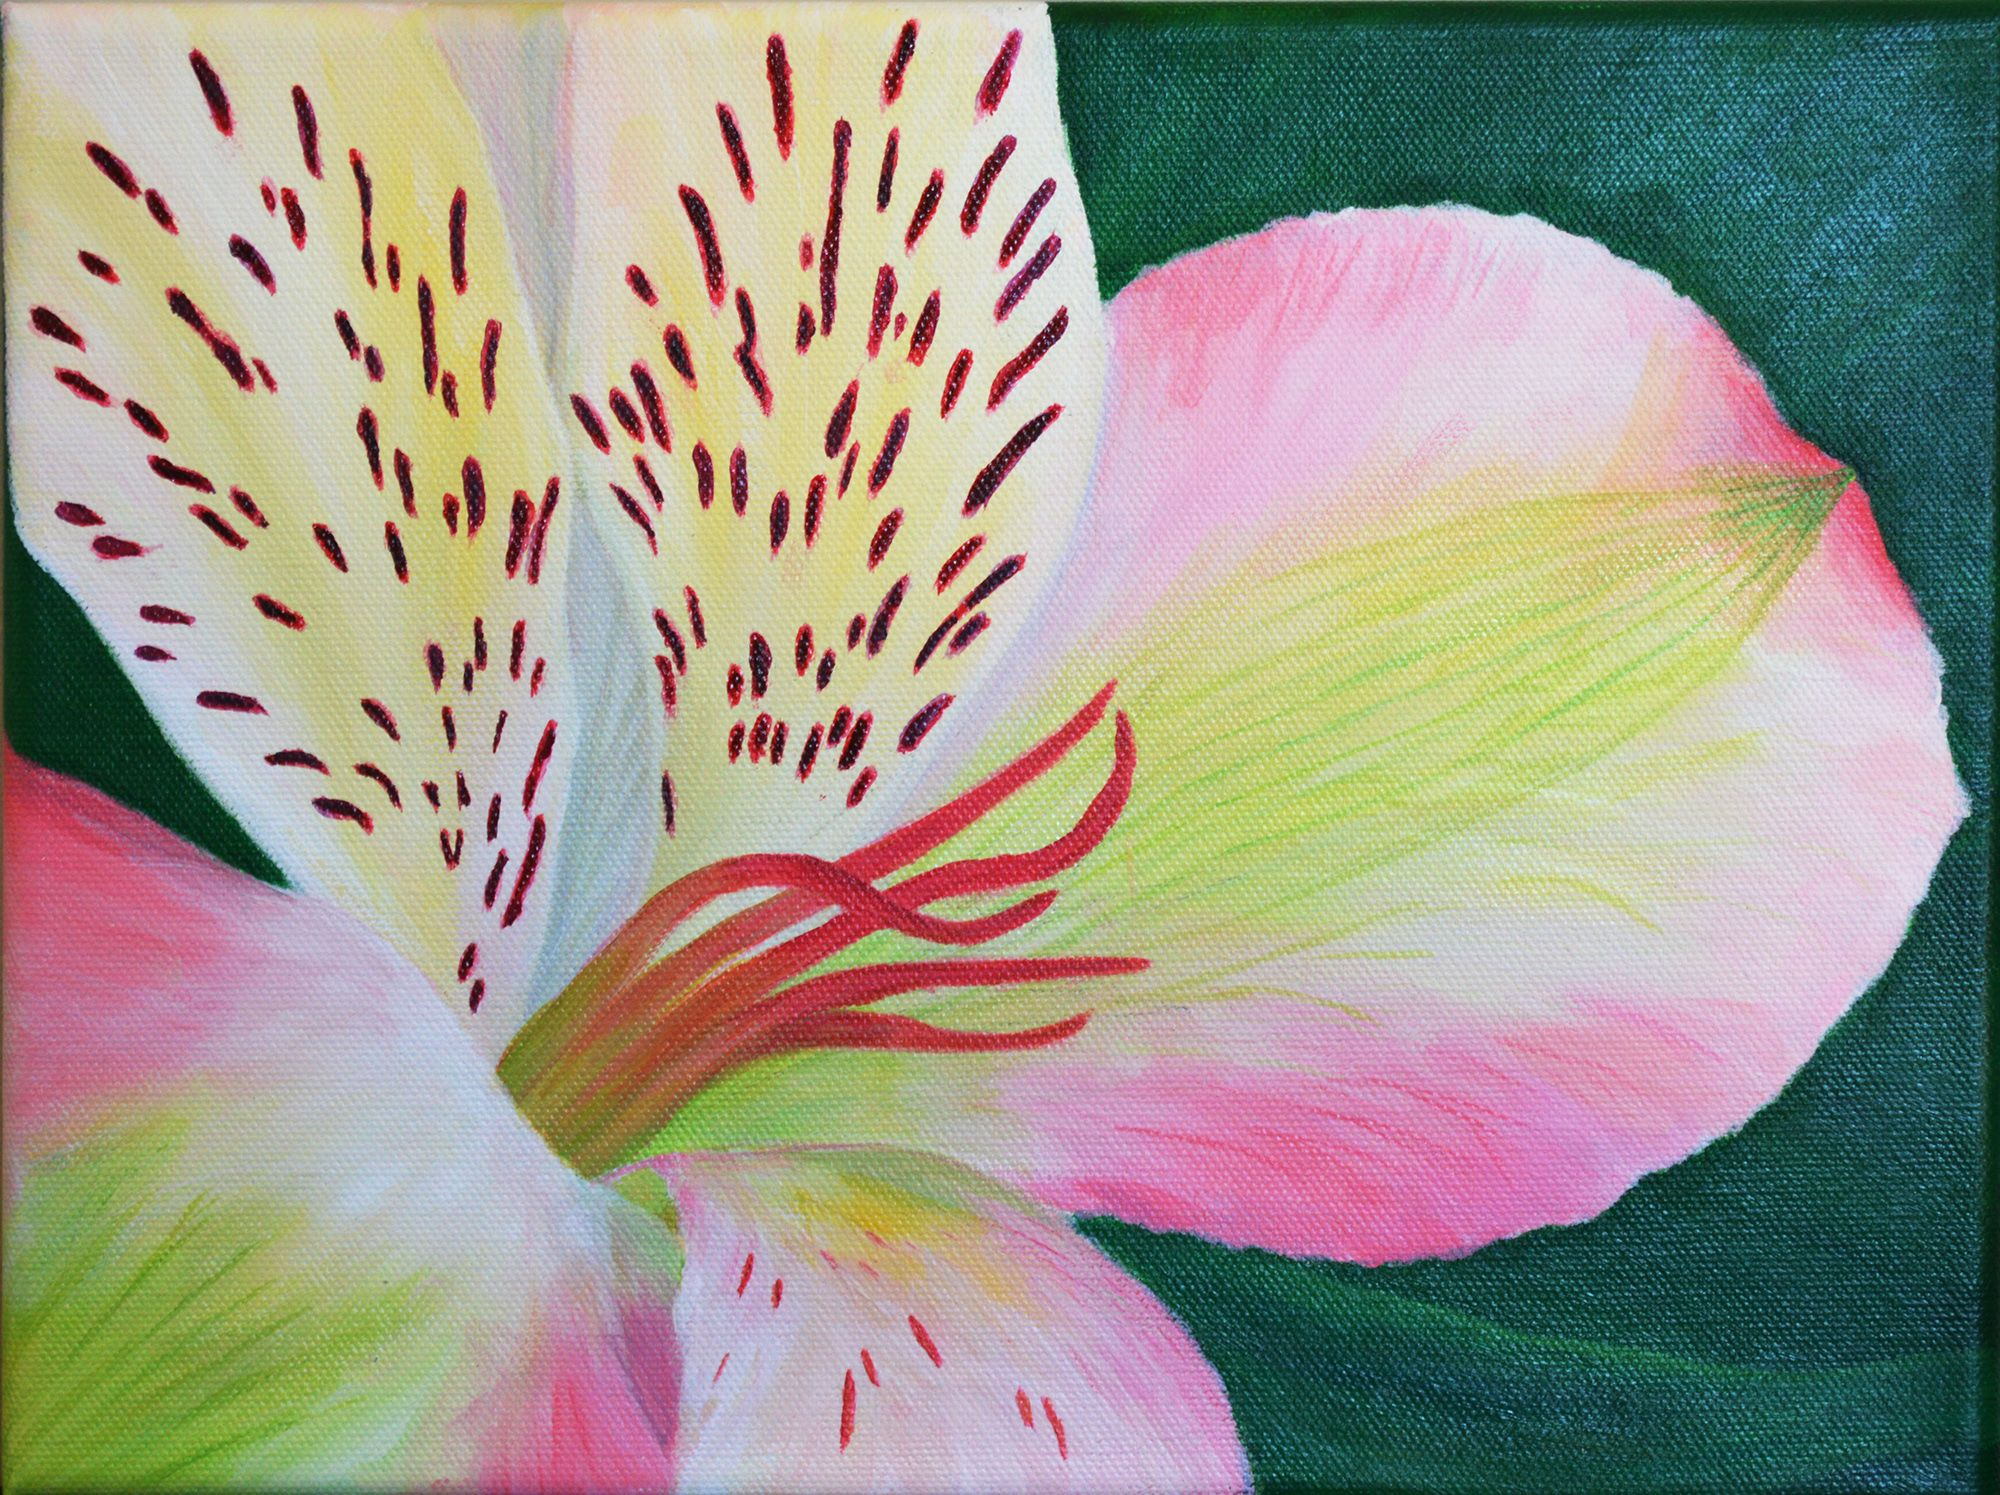 Peruvian Lily Alstroemeria Flower Original Wall Art For Sale Acrylic Painting From The Author Https Www Etsy With Images Flower Painting Original Wall Art Lily Flower